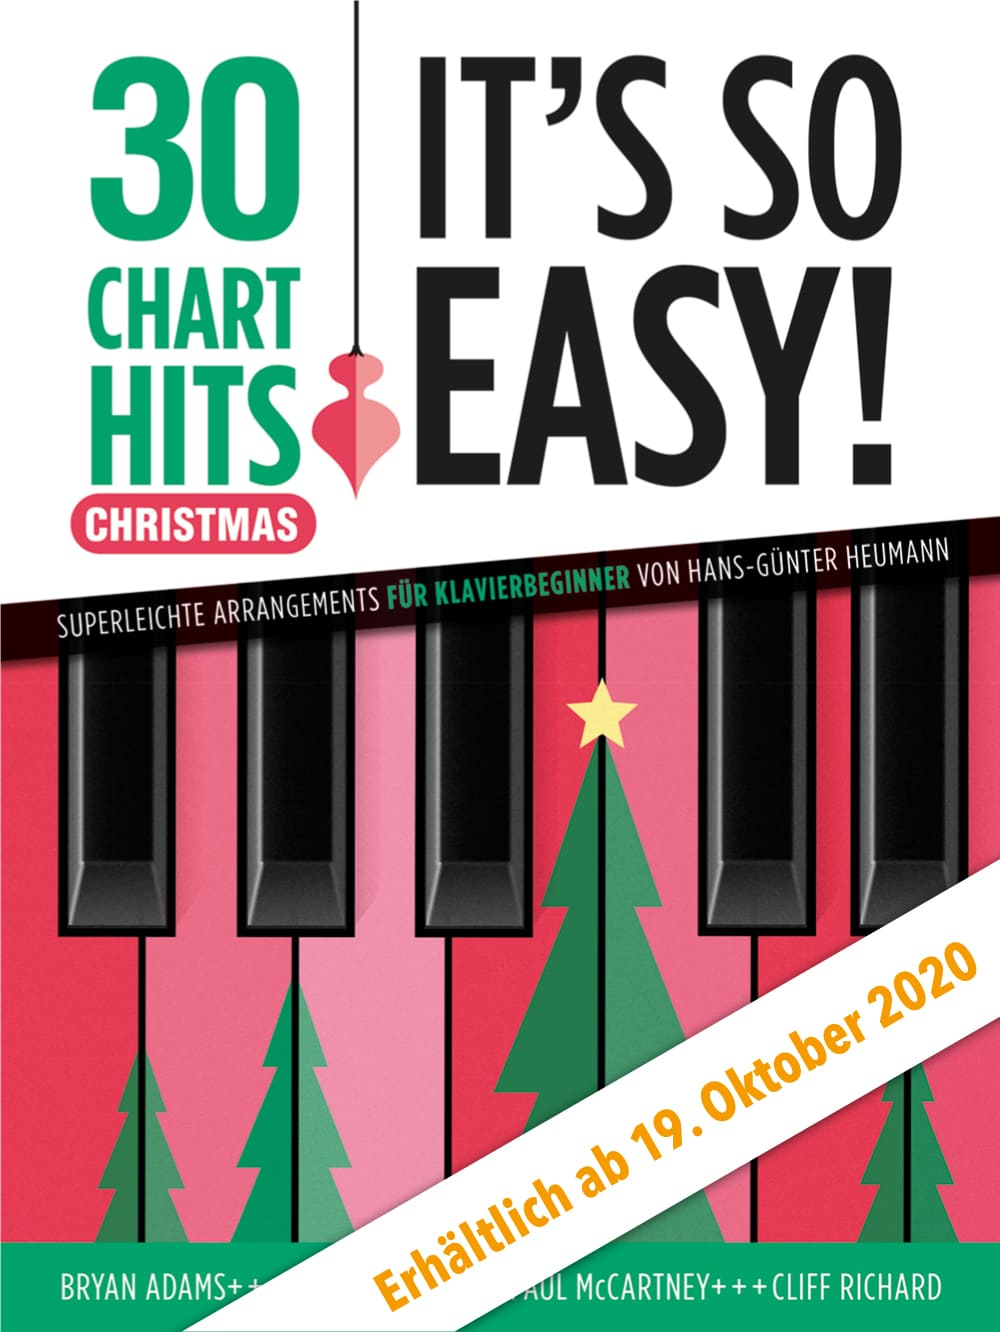 30 Chart Hits: It's so easy! Christmas